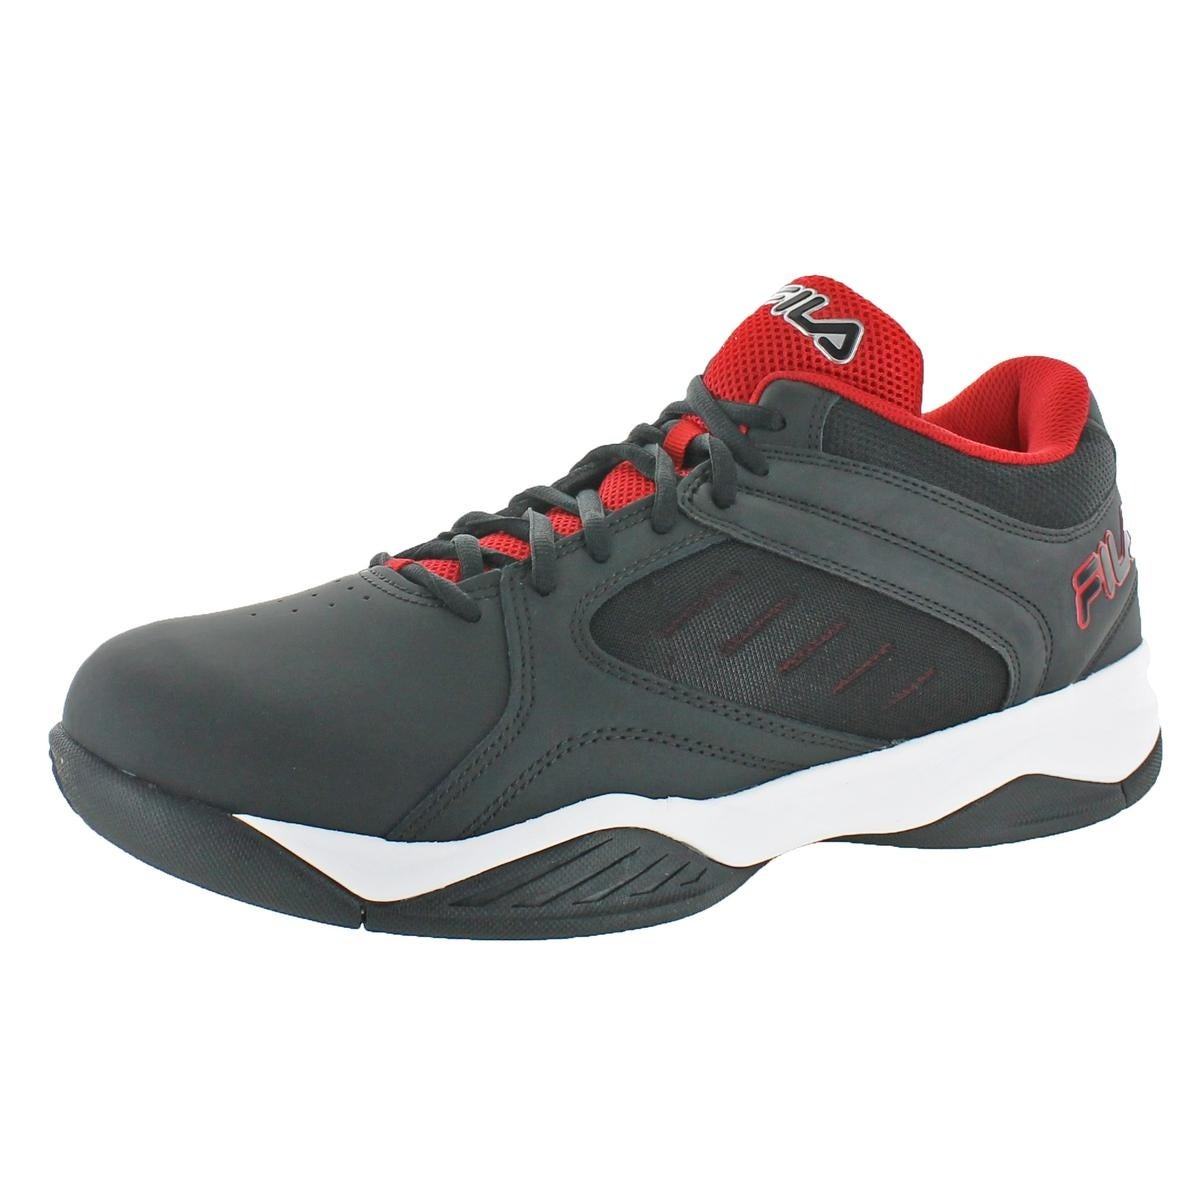 best website 777cc cc5bf Fila Mens Bank Basketball Shoes Leather Lightweight